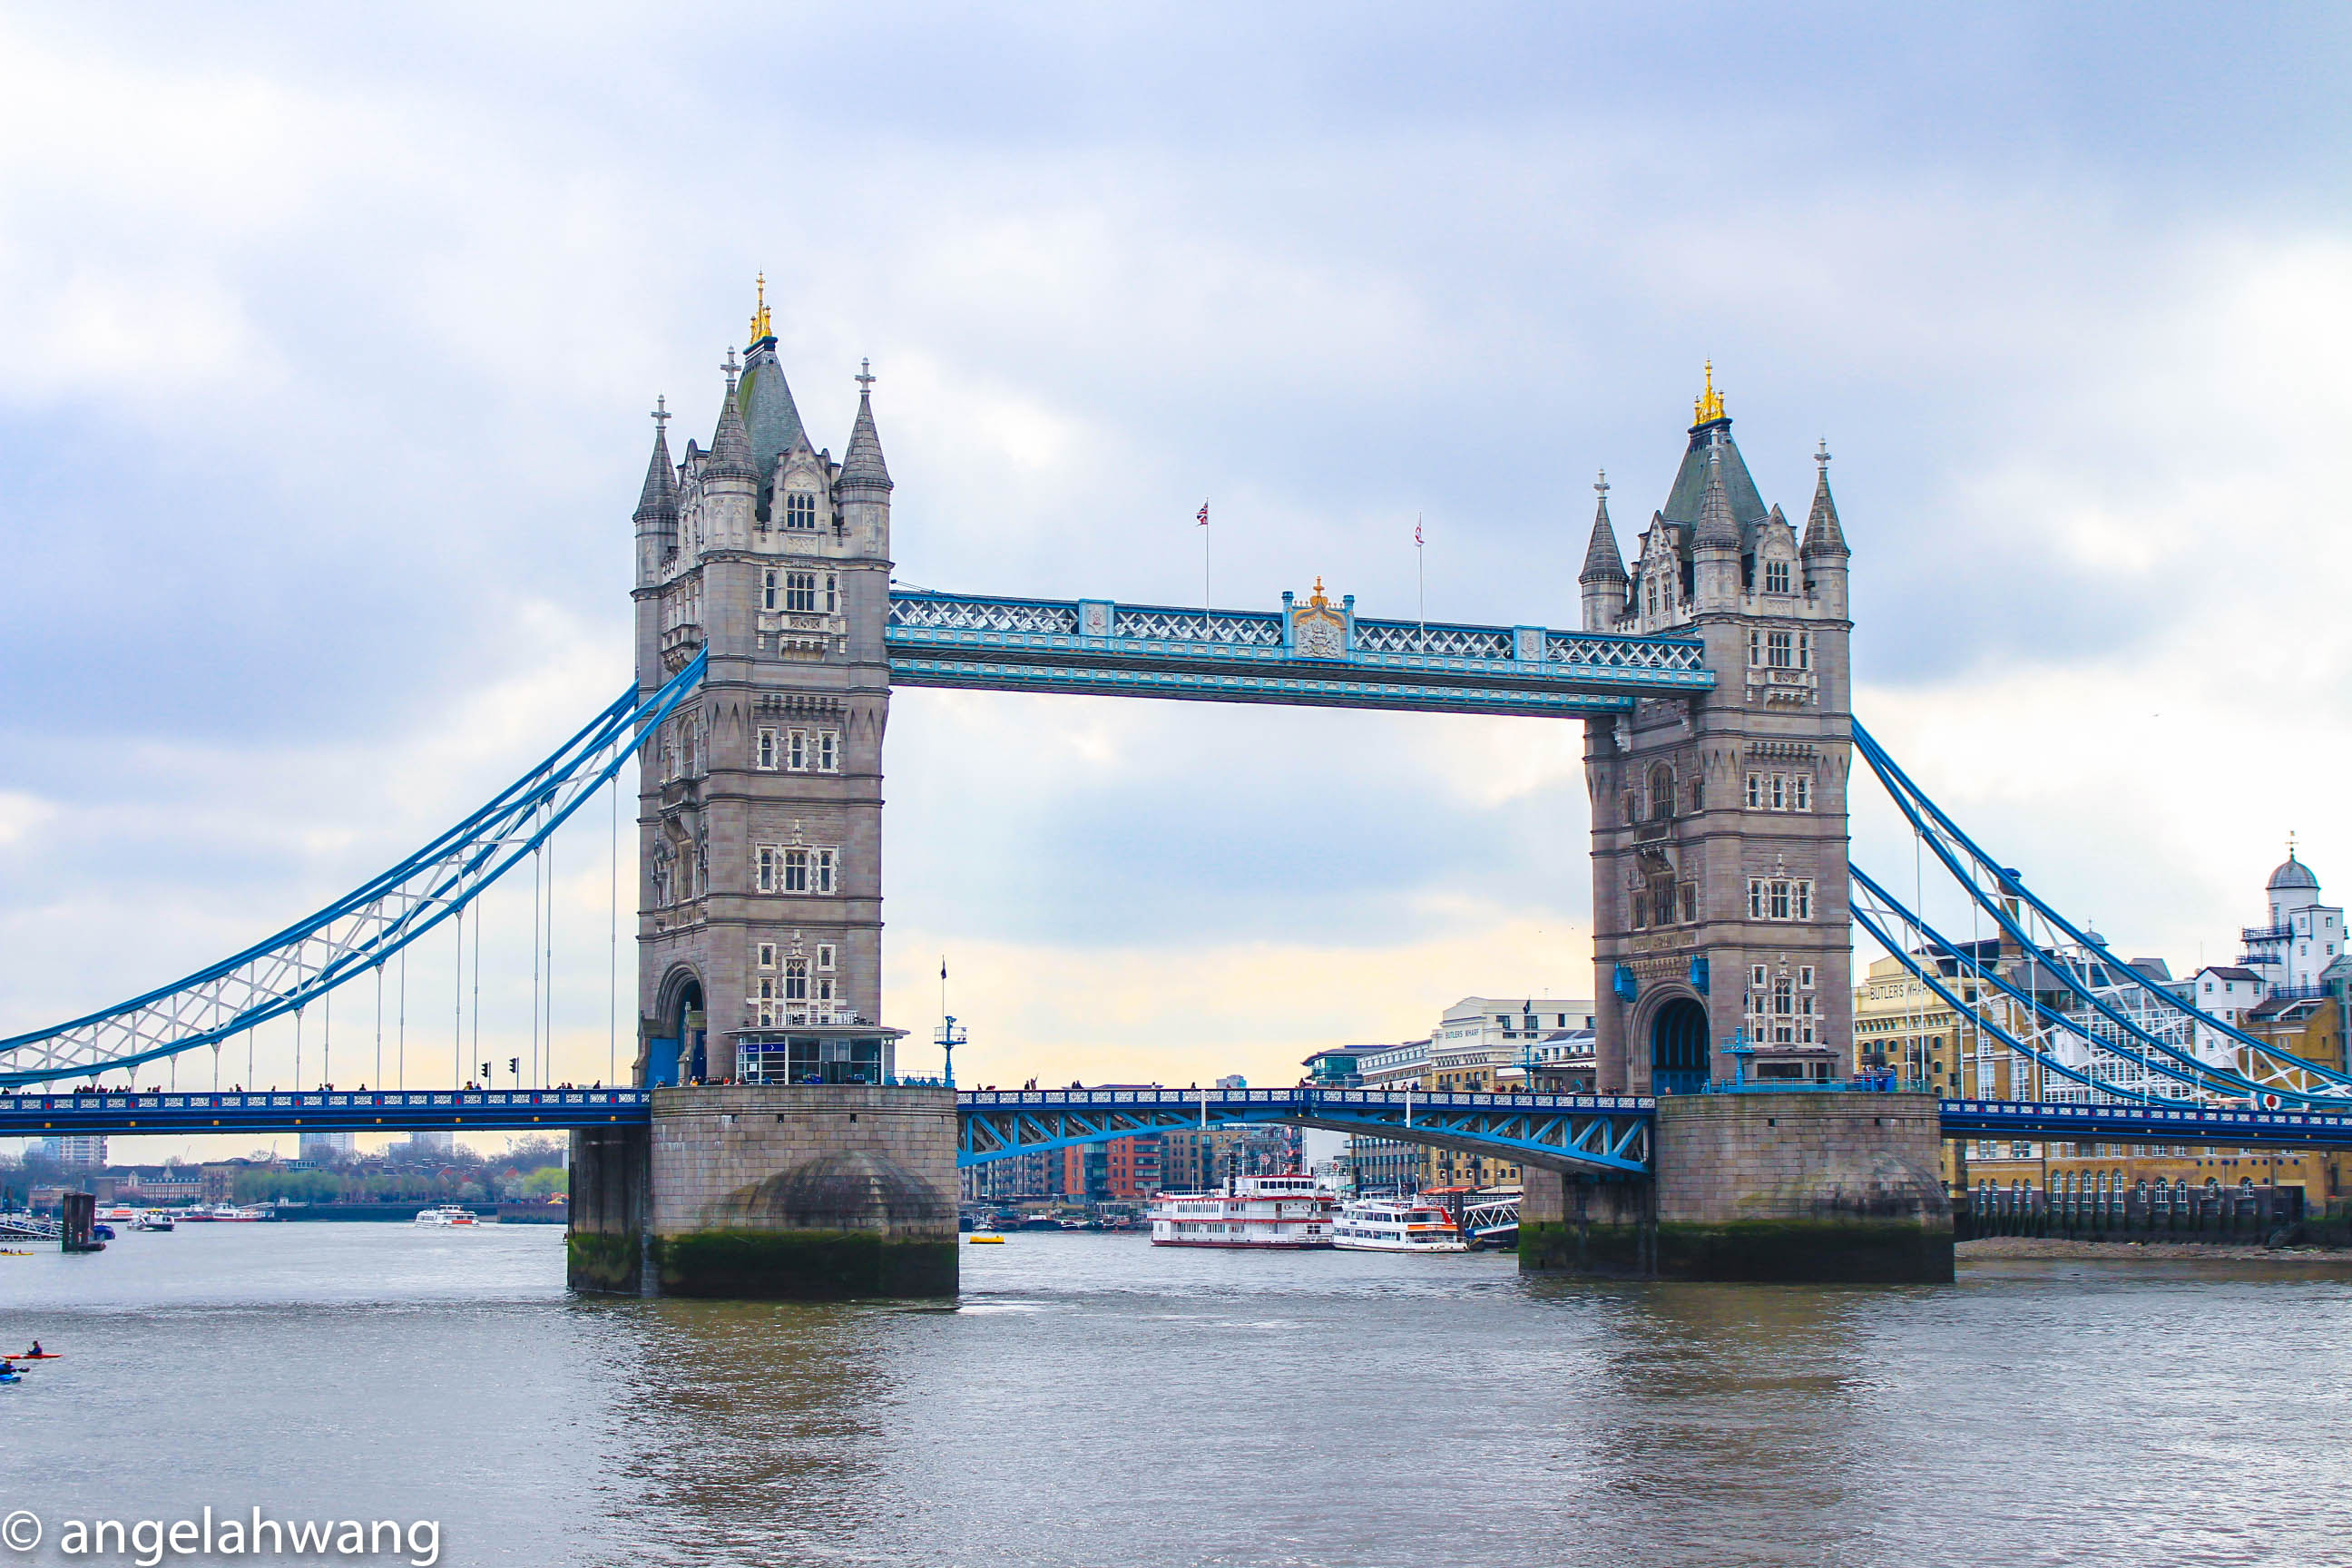 Central London - Tower Bridge